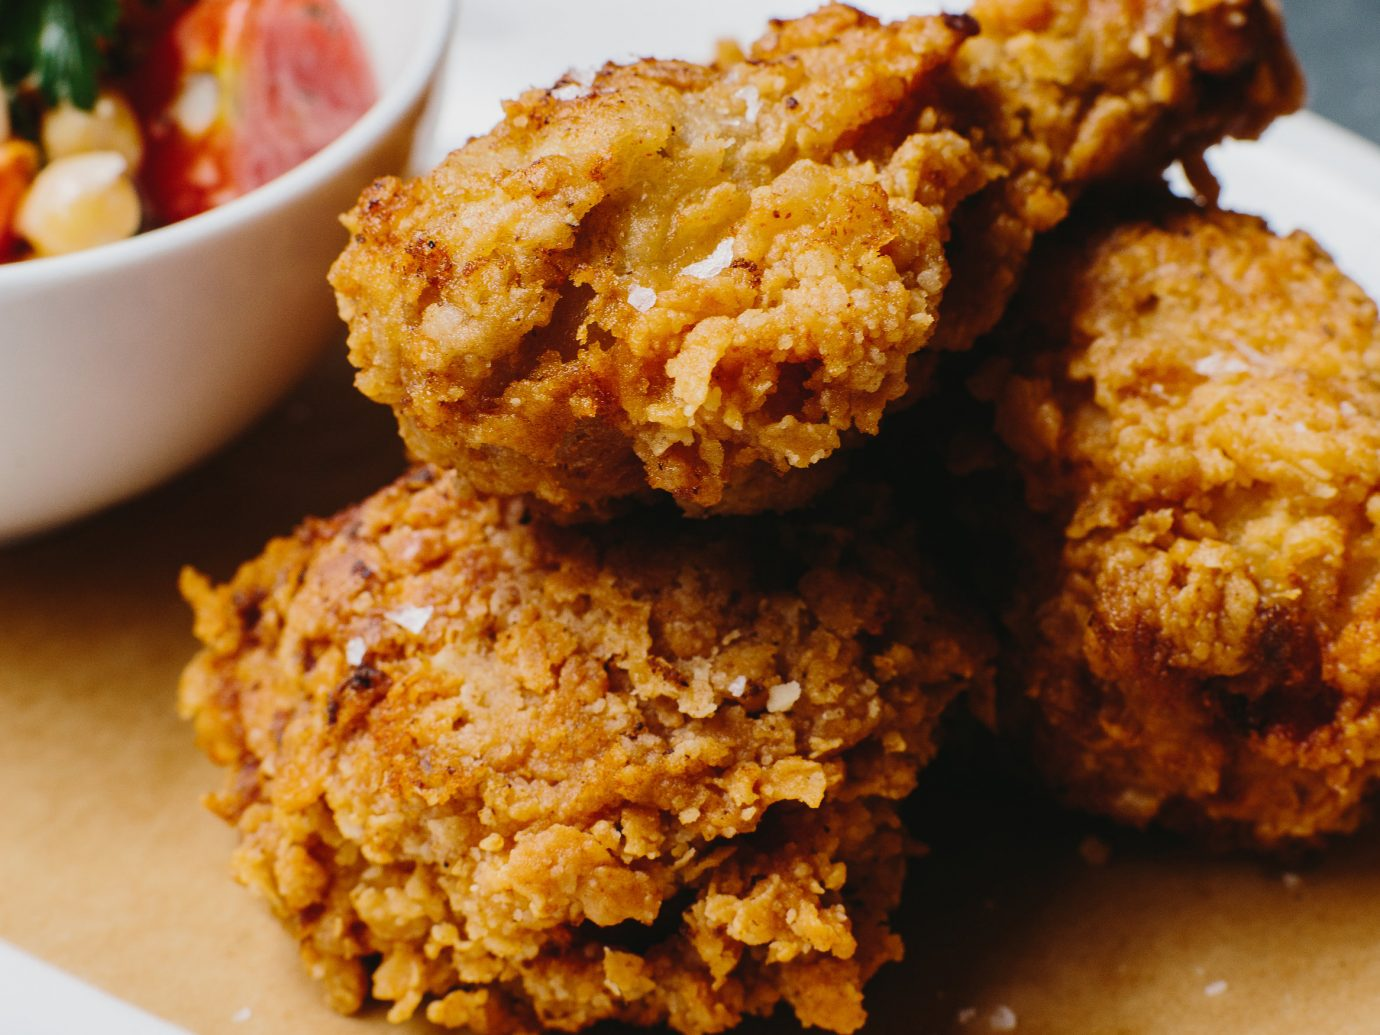 Up Close photo of a fried chicken platter